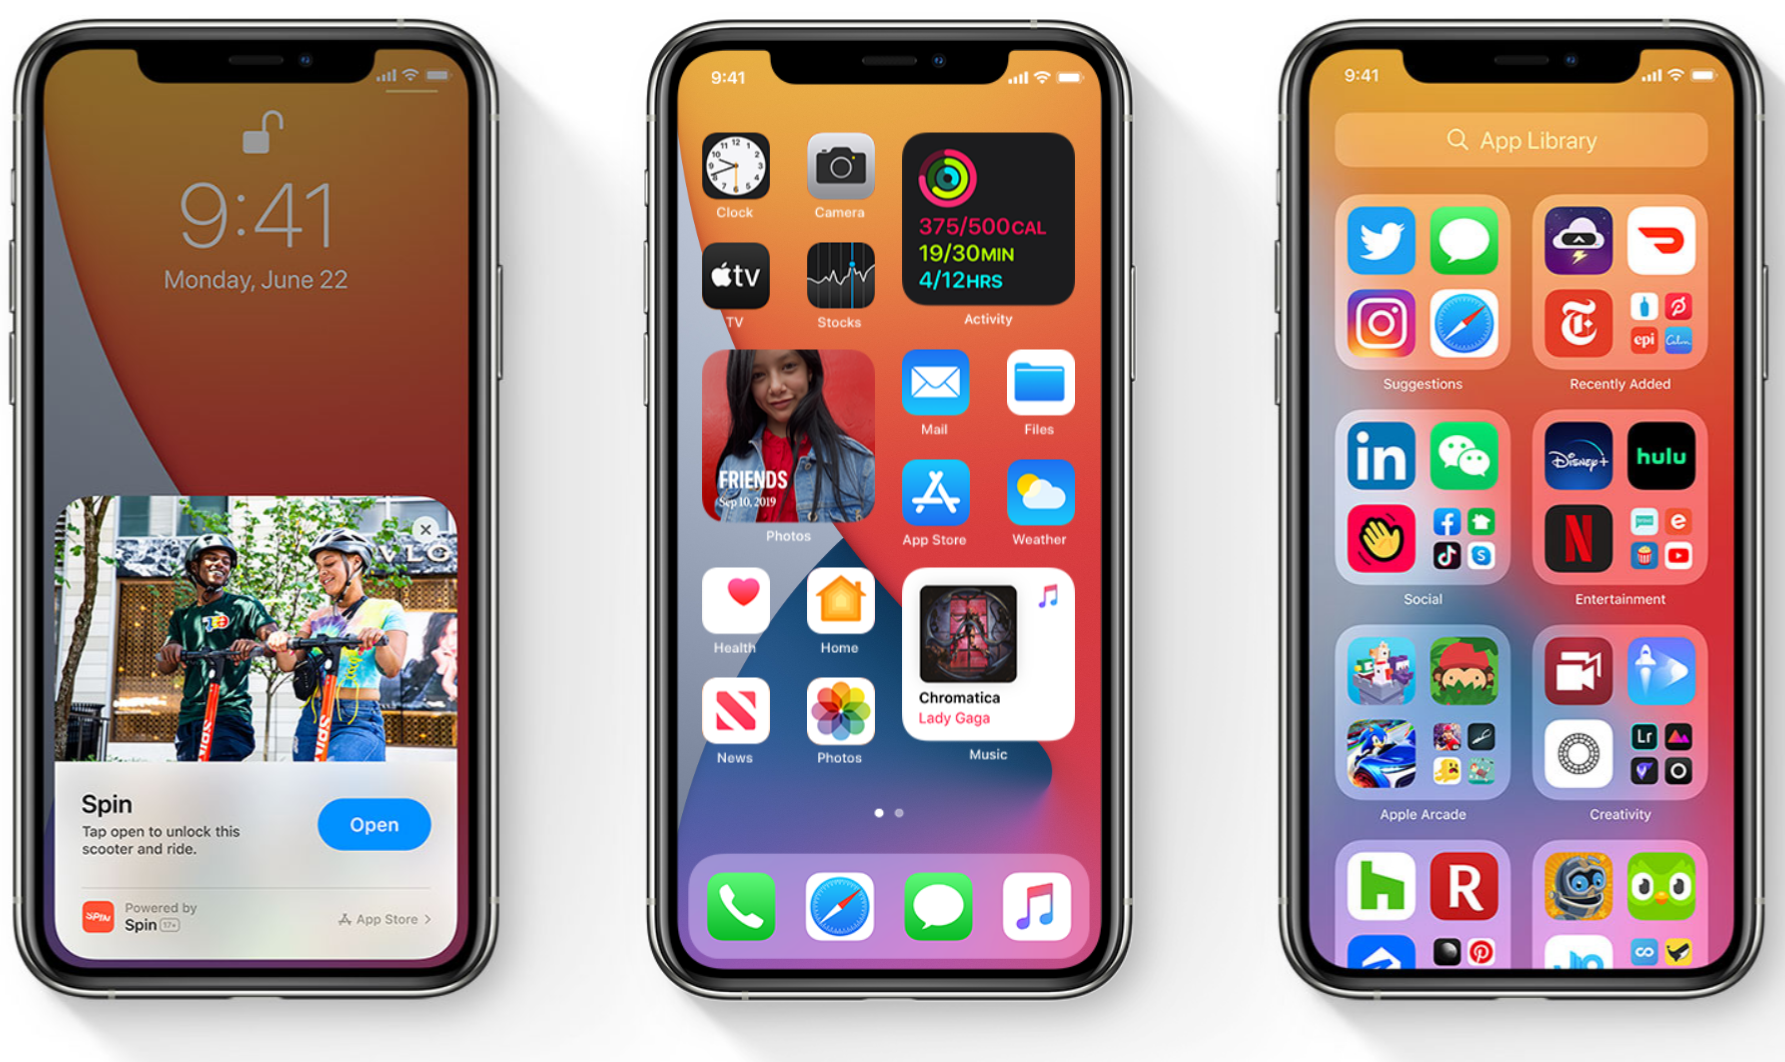 Apple Announces Ios 14 With Some Nice Aesthetic Tweaks And Several Useful Features Notebookcheck Net News